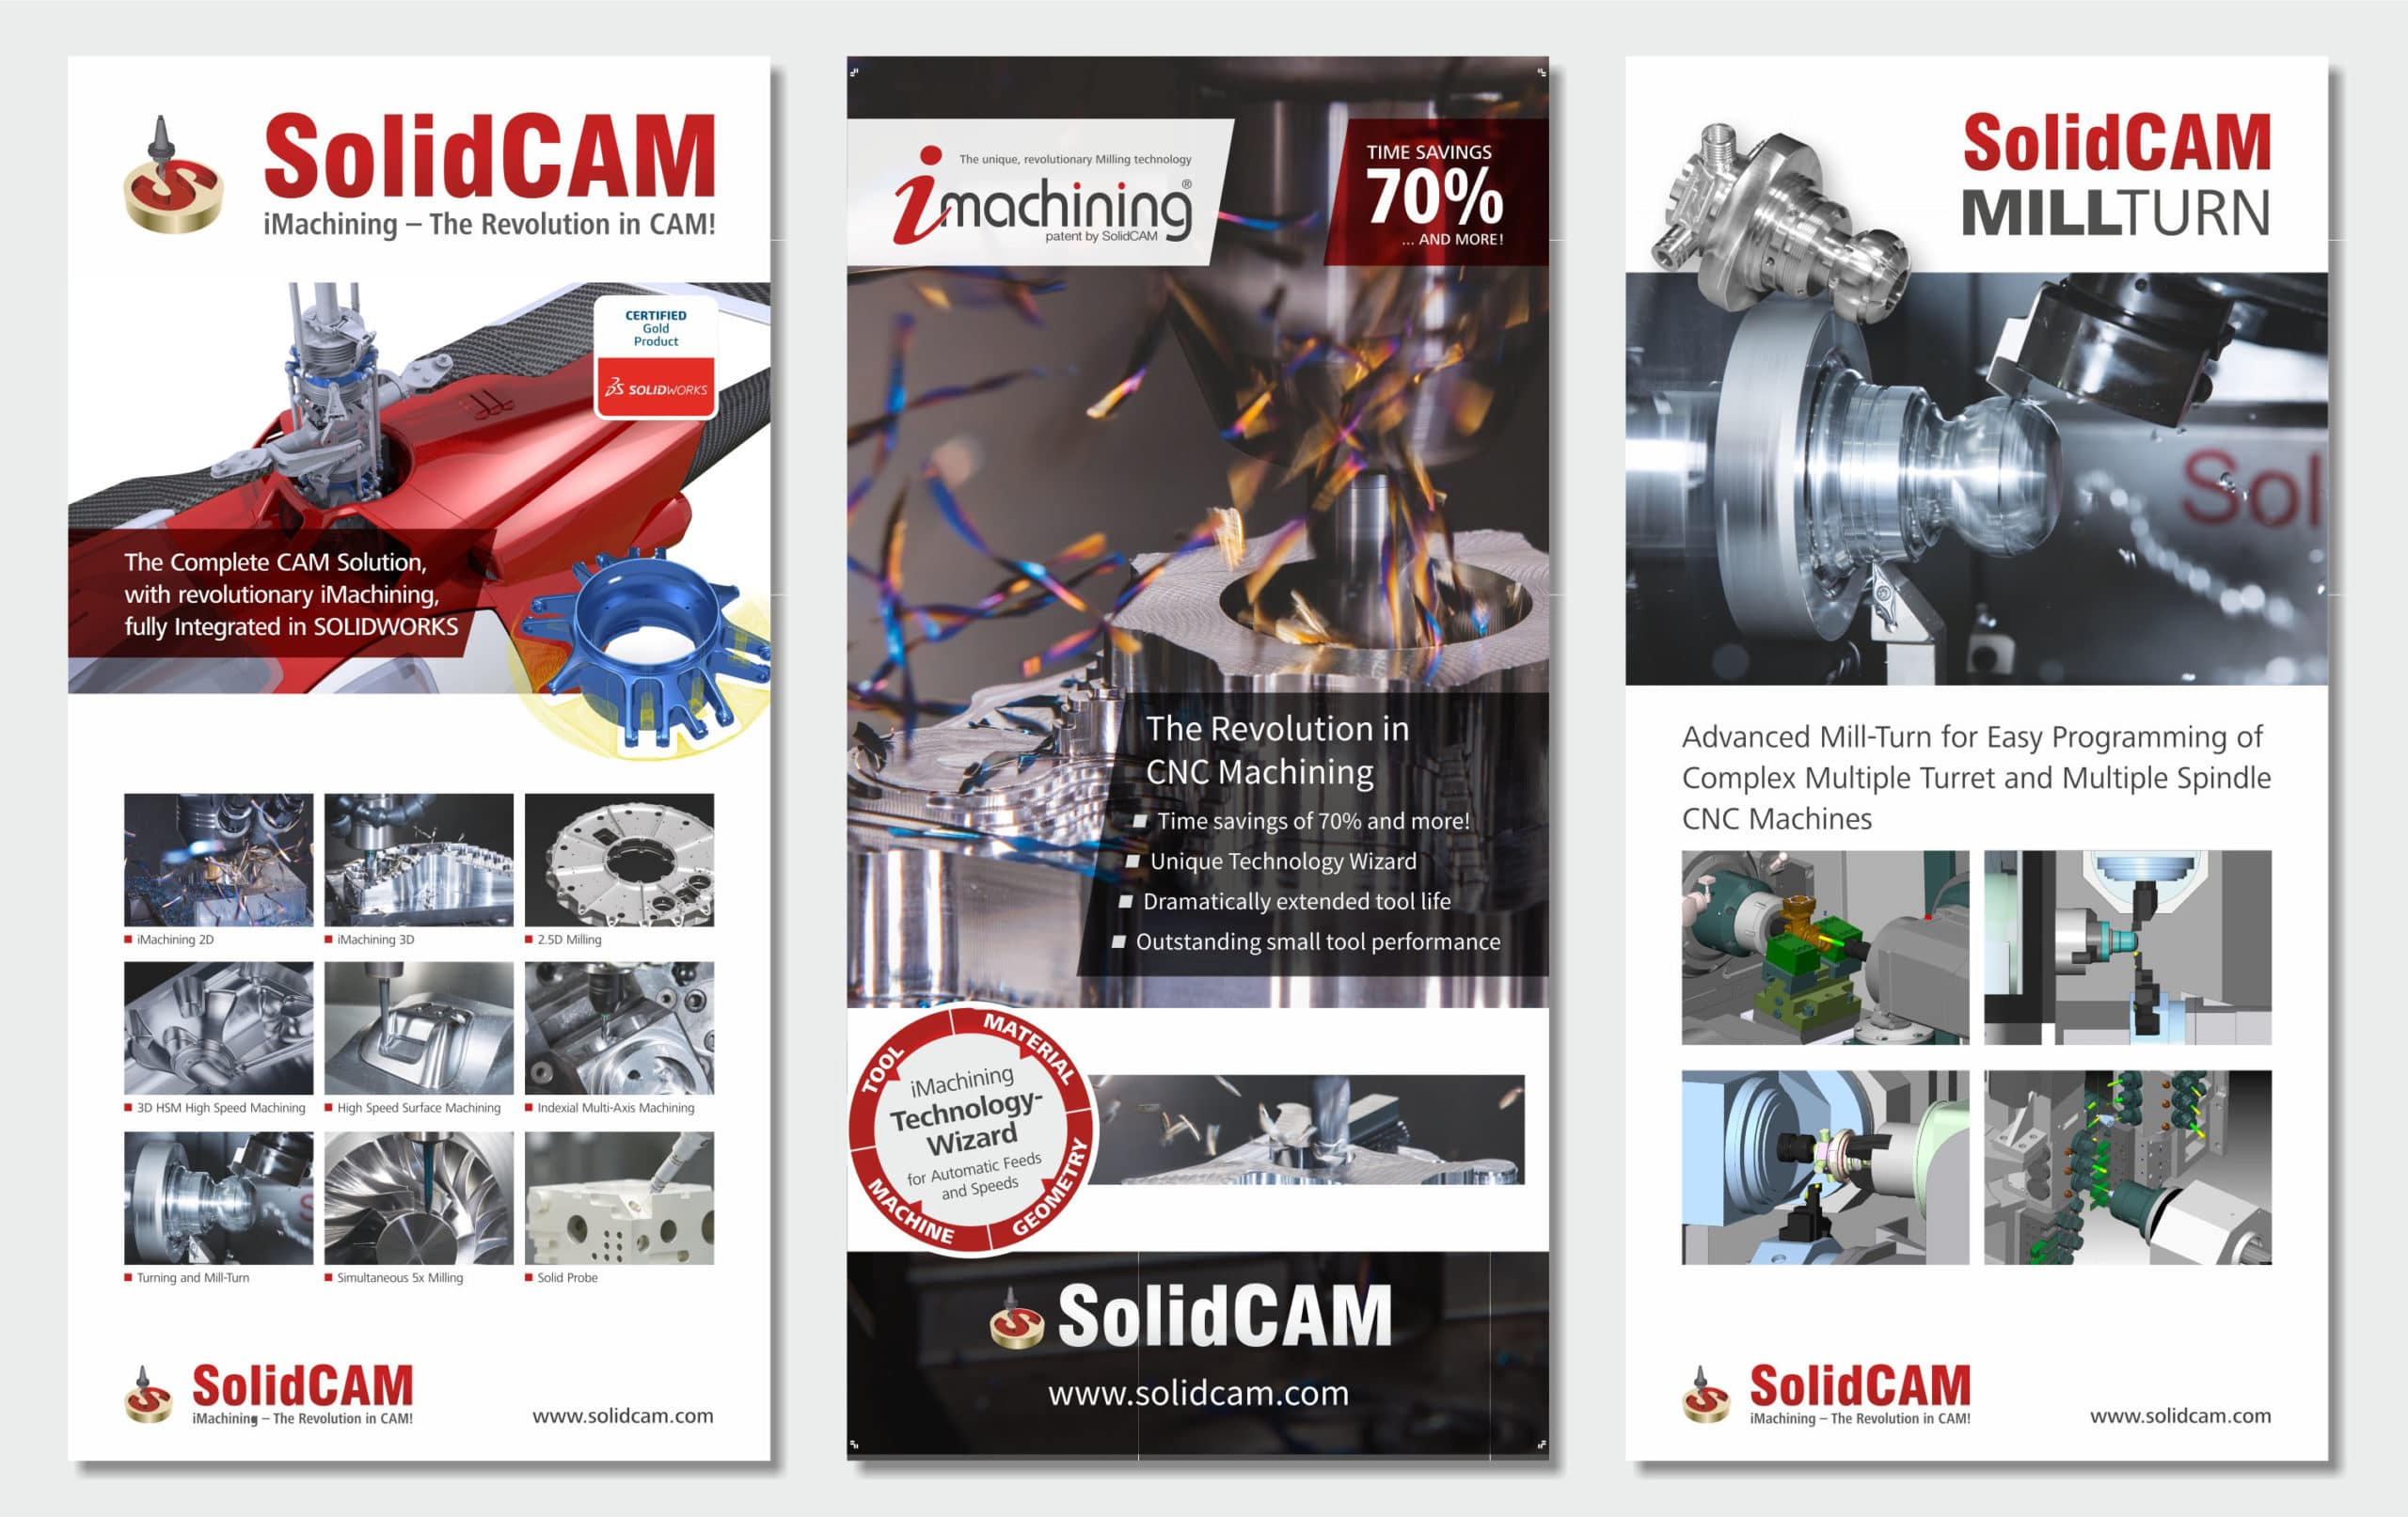 3 high resolution print ready artworks for exhibition poster presentation of Solidcam company